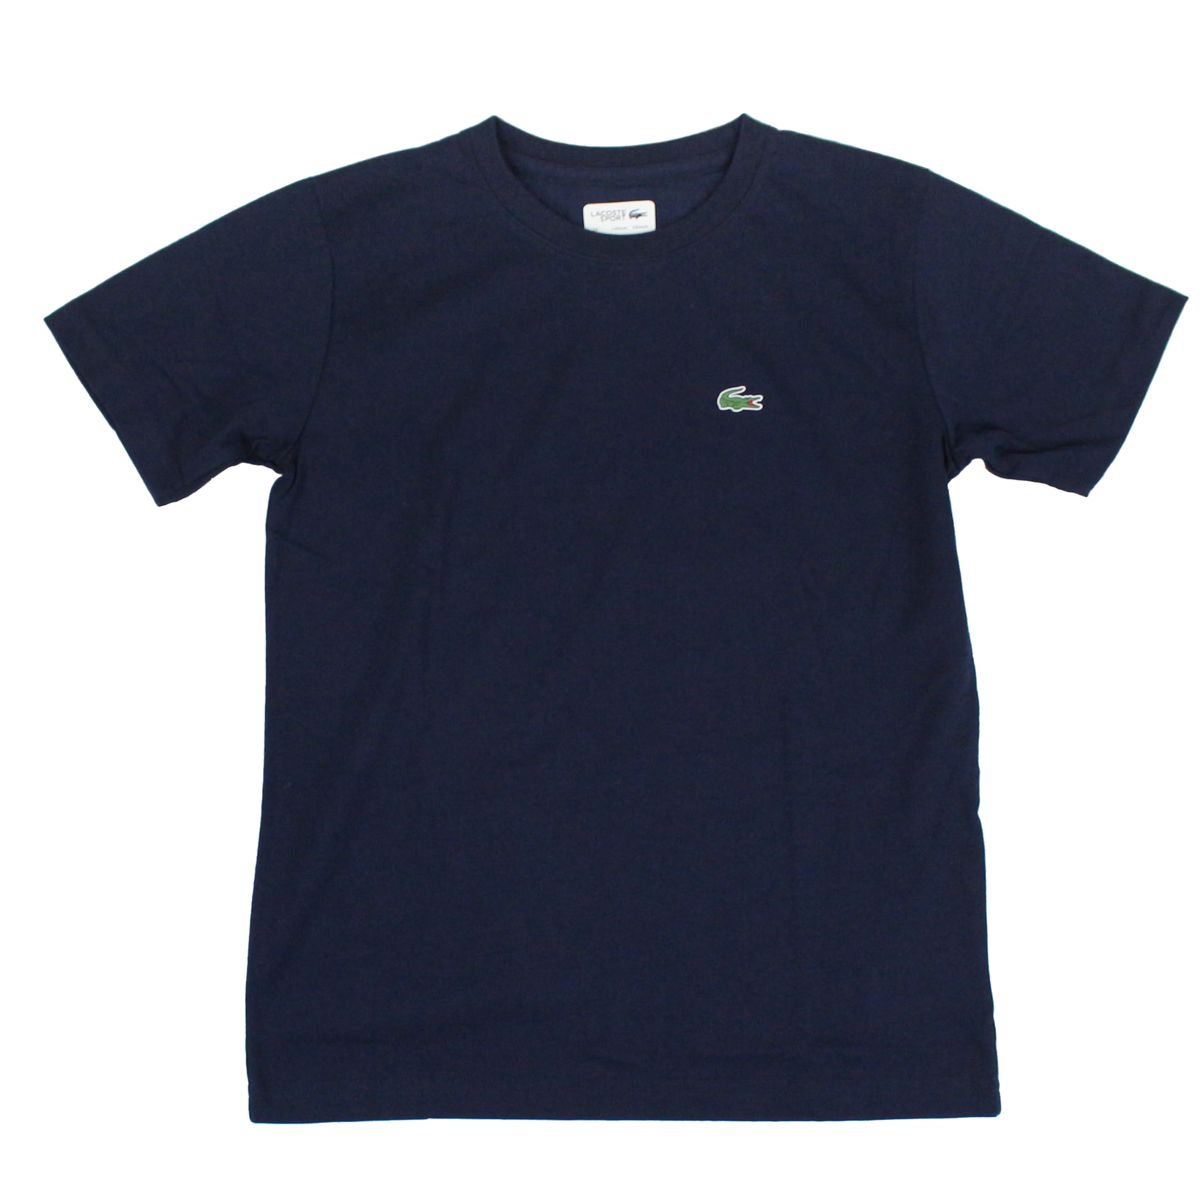 Crew-neck t-shirt with logo embroidery Blue Lacoste